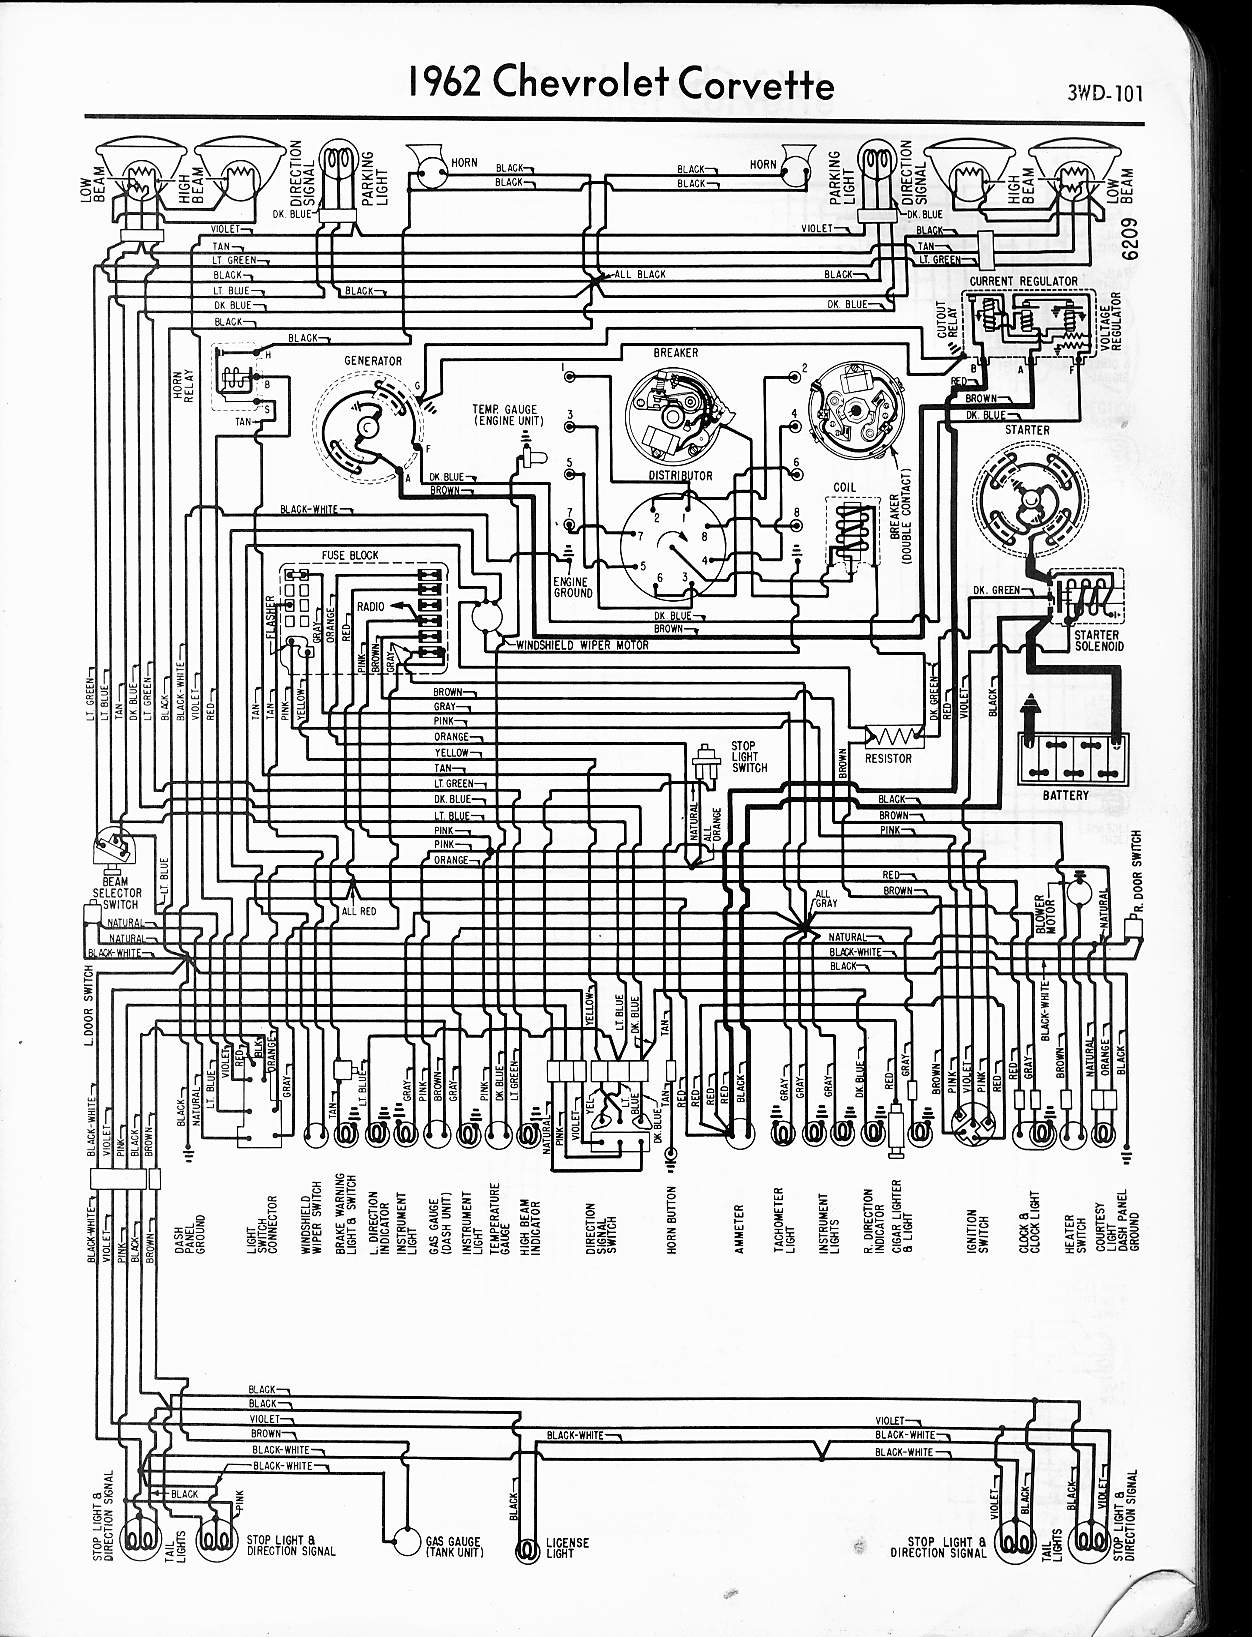 hight resolution of 57 65 chevy wiring diagrams 72 chevy wiring diagram 63 chevy wiring diagram